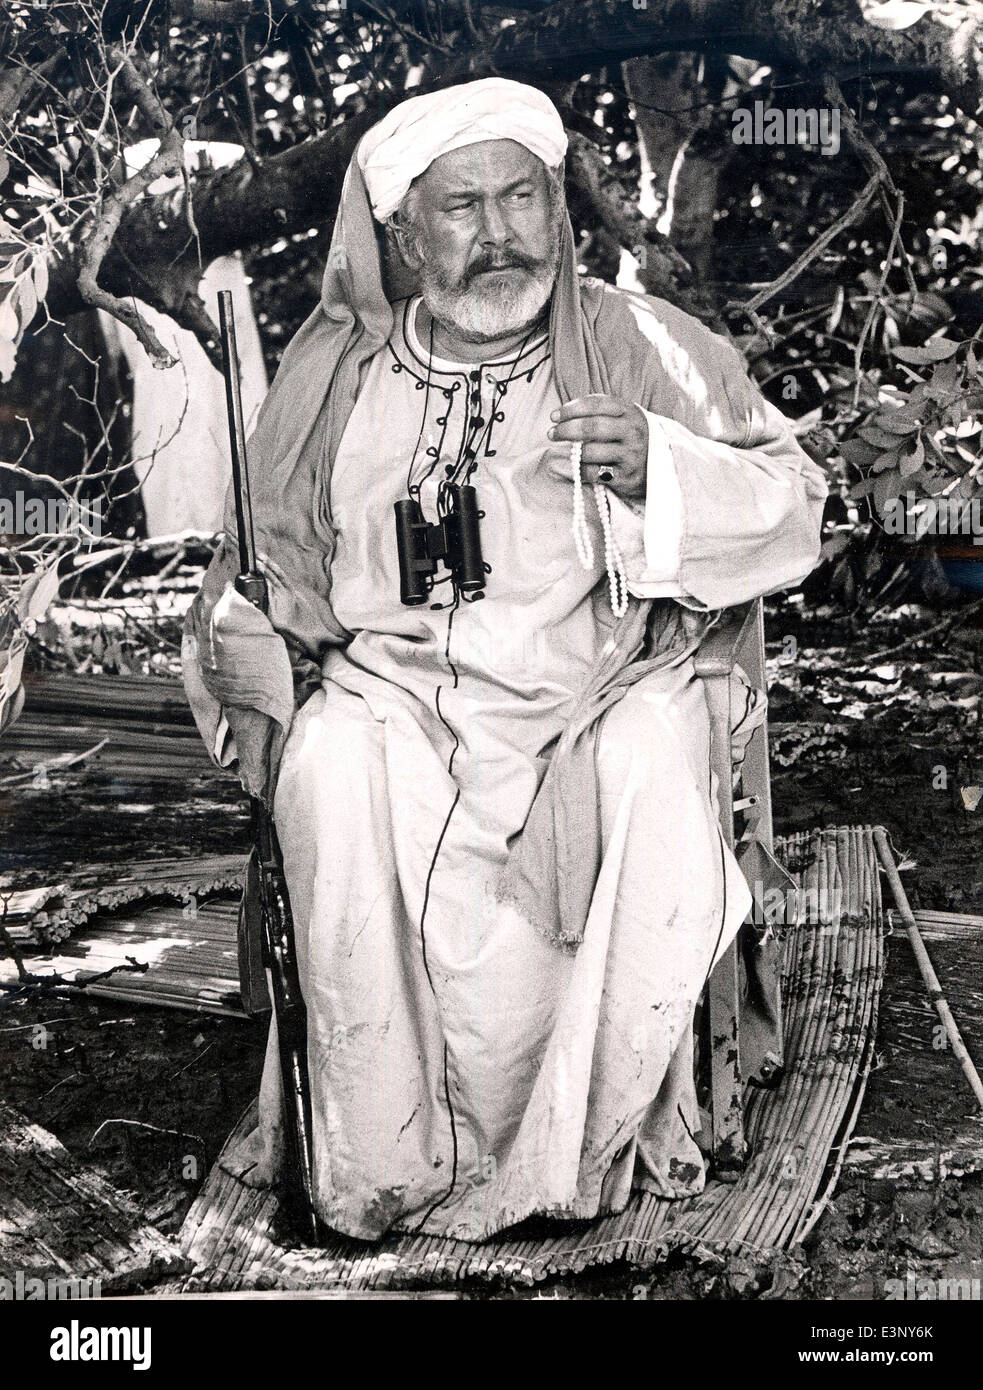 Sir Peter Ustinov (1921-2004) renowned actor playing an evil slave trader in the film Ashanti in Kenya in 1978 - Stock Image